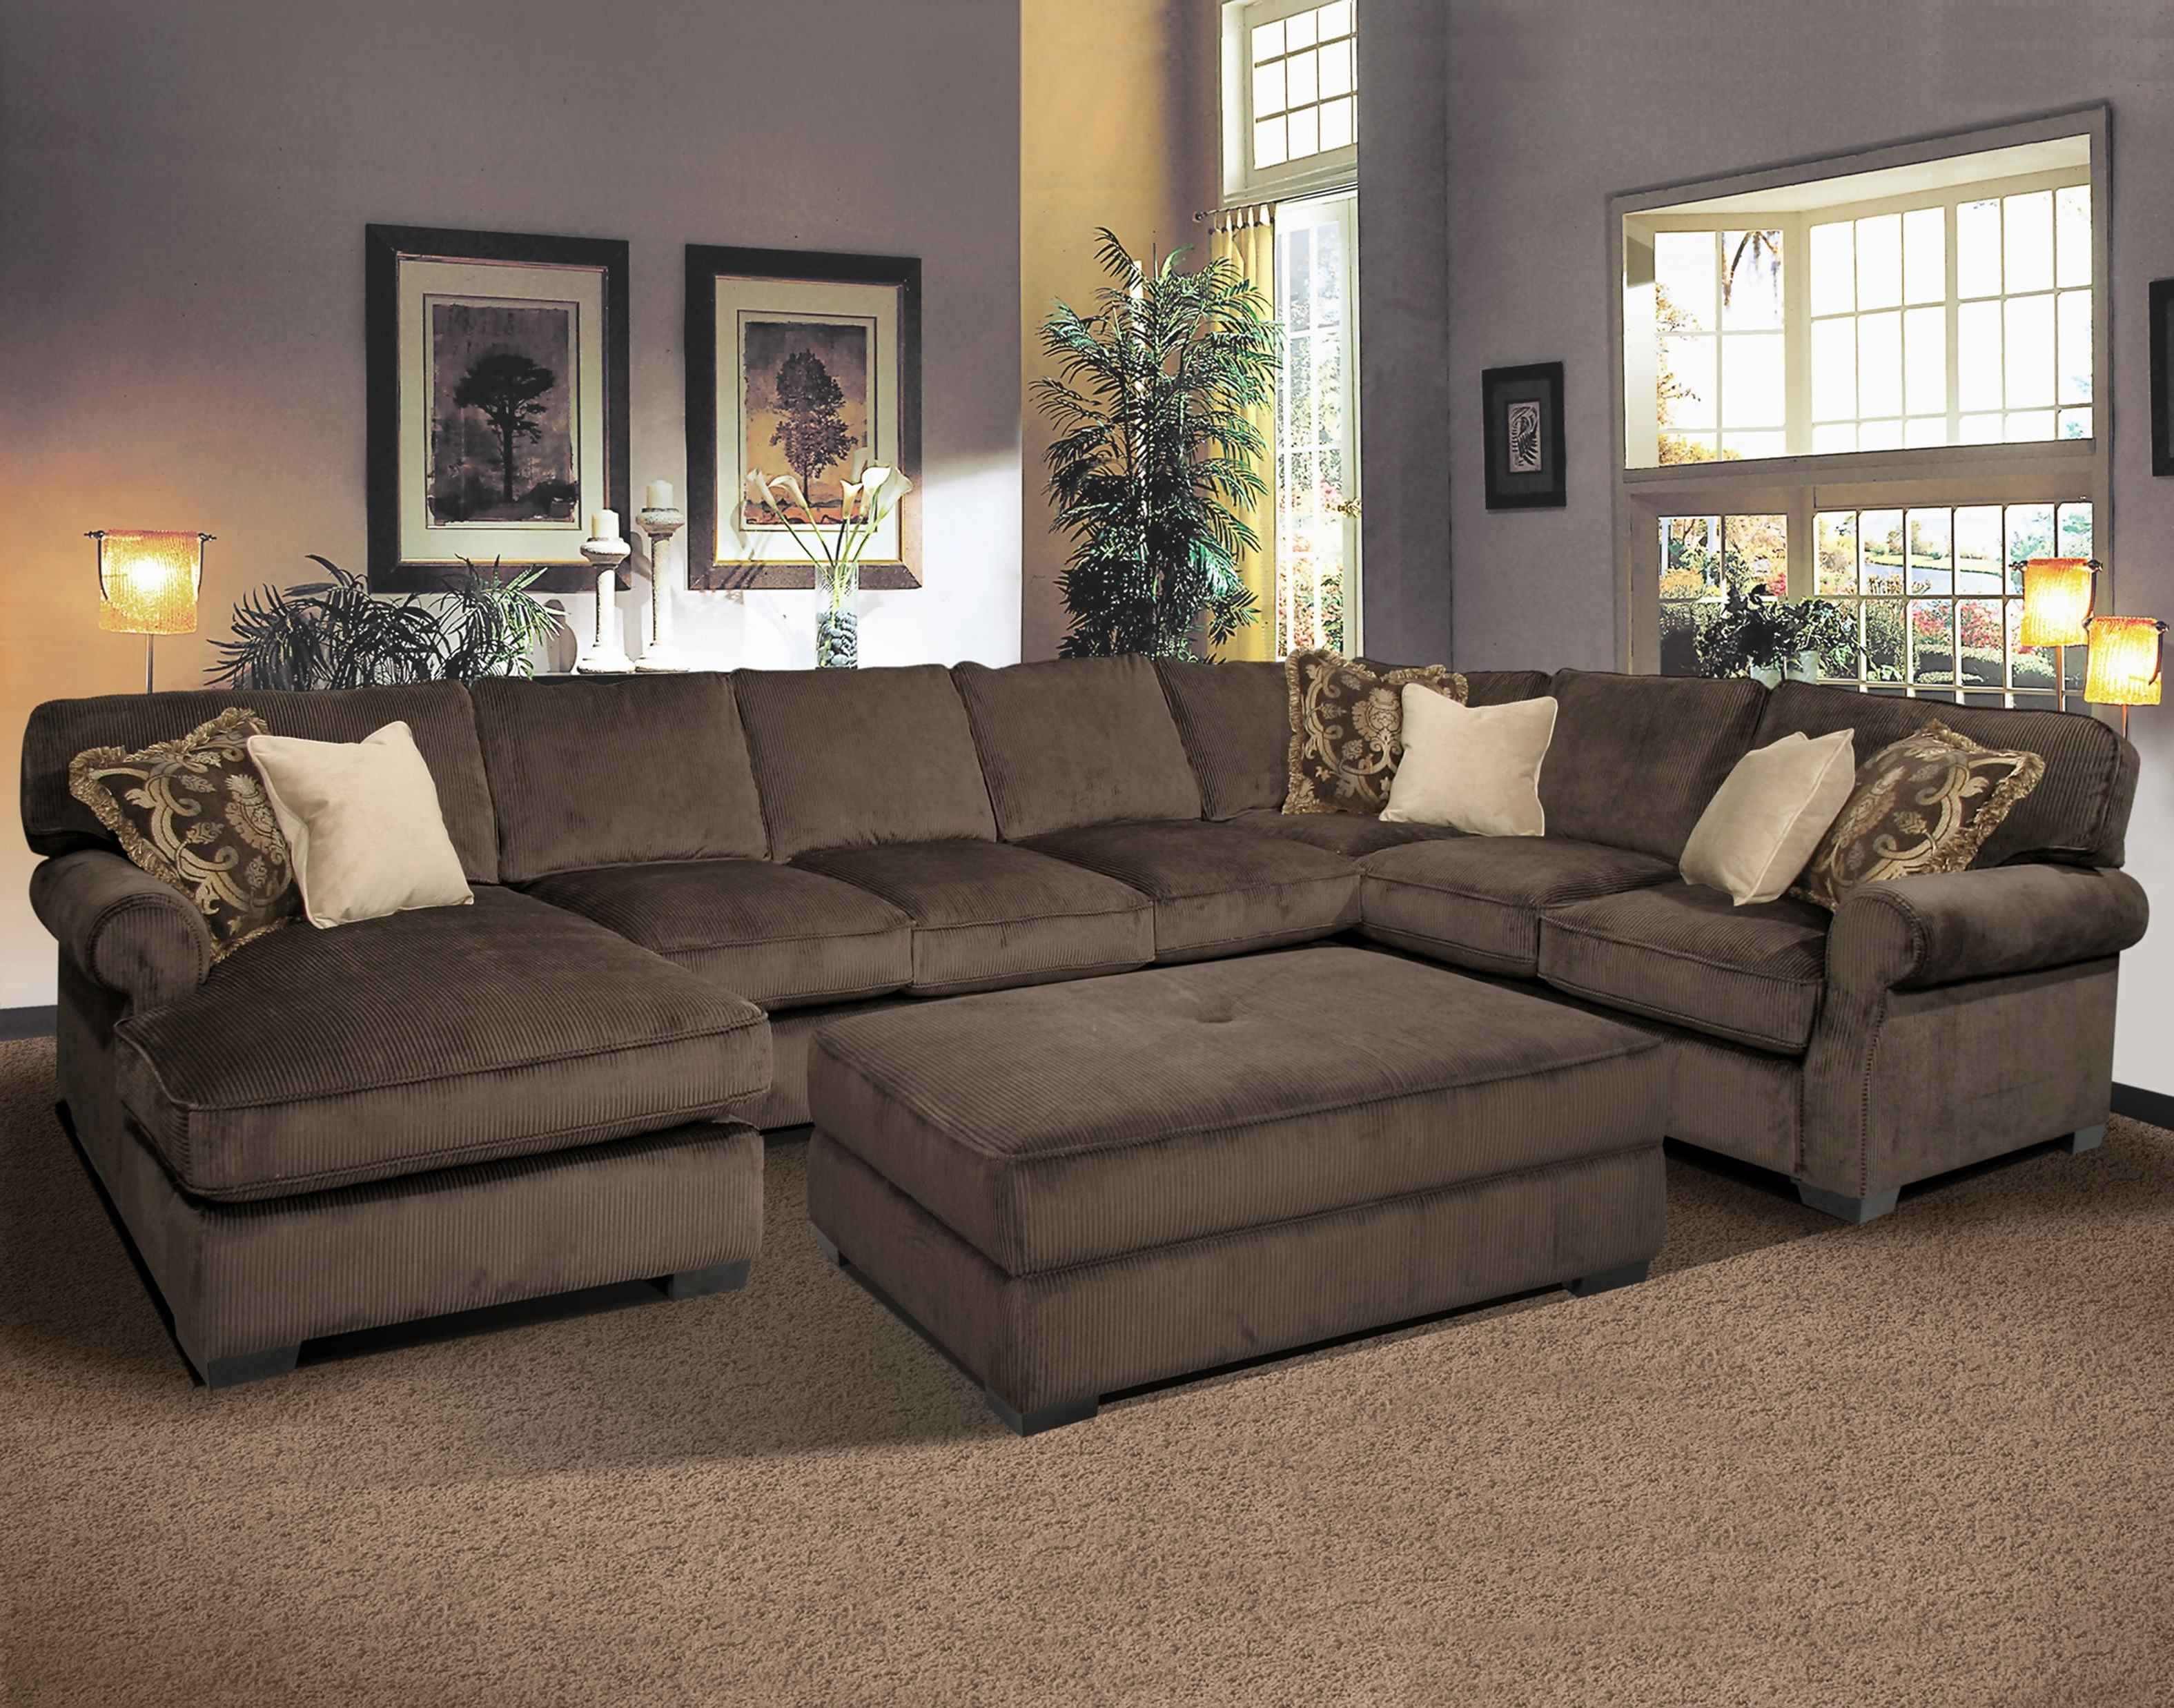 Pittsburgh Sectional Sofas With Regard To Most Up To Date Big And Comfy Grand Island Large, 7 Seat Sectional Sofa With Right (View 13 of 20)